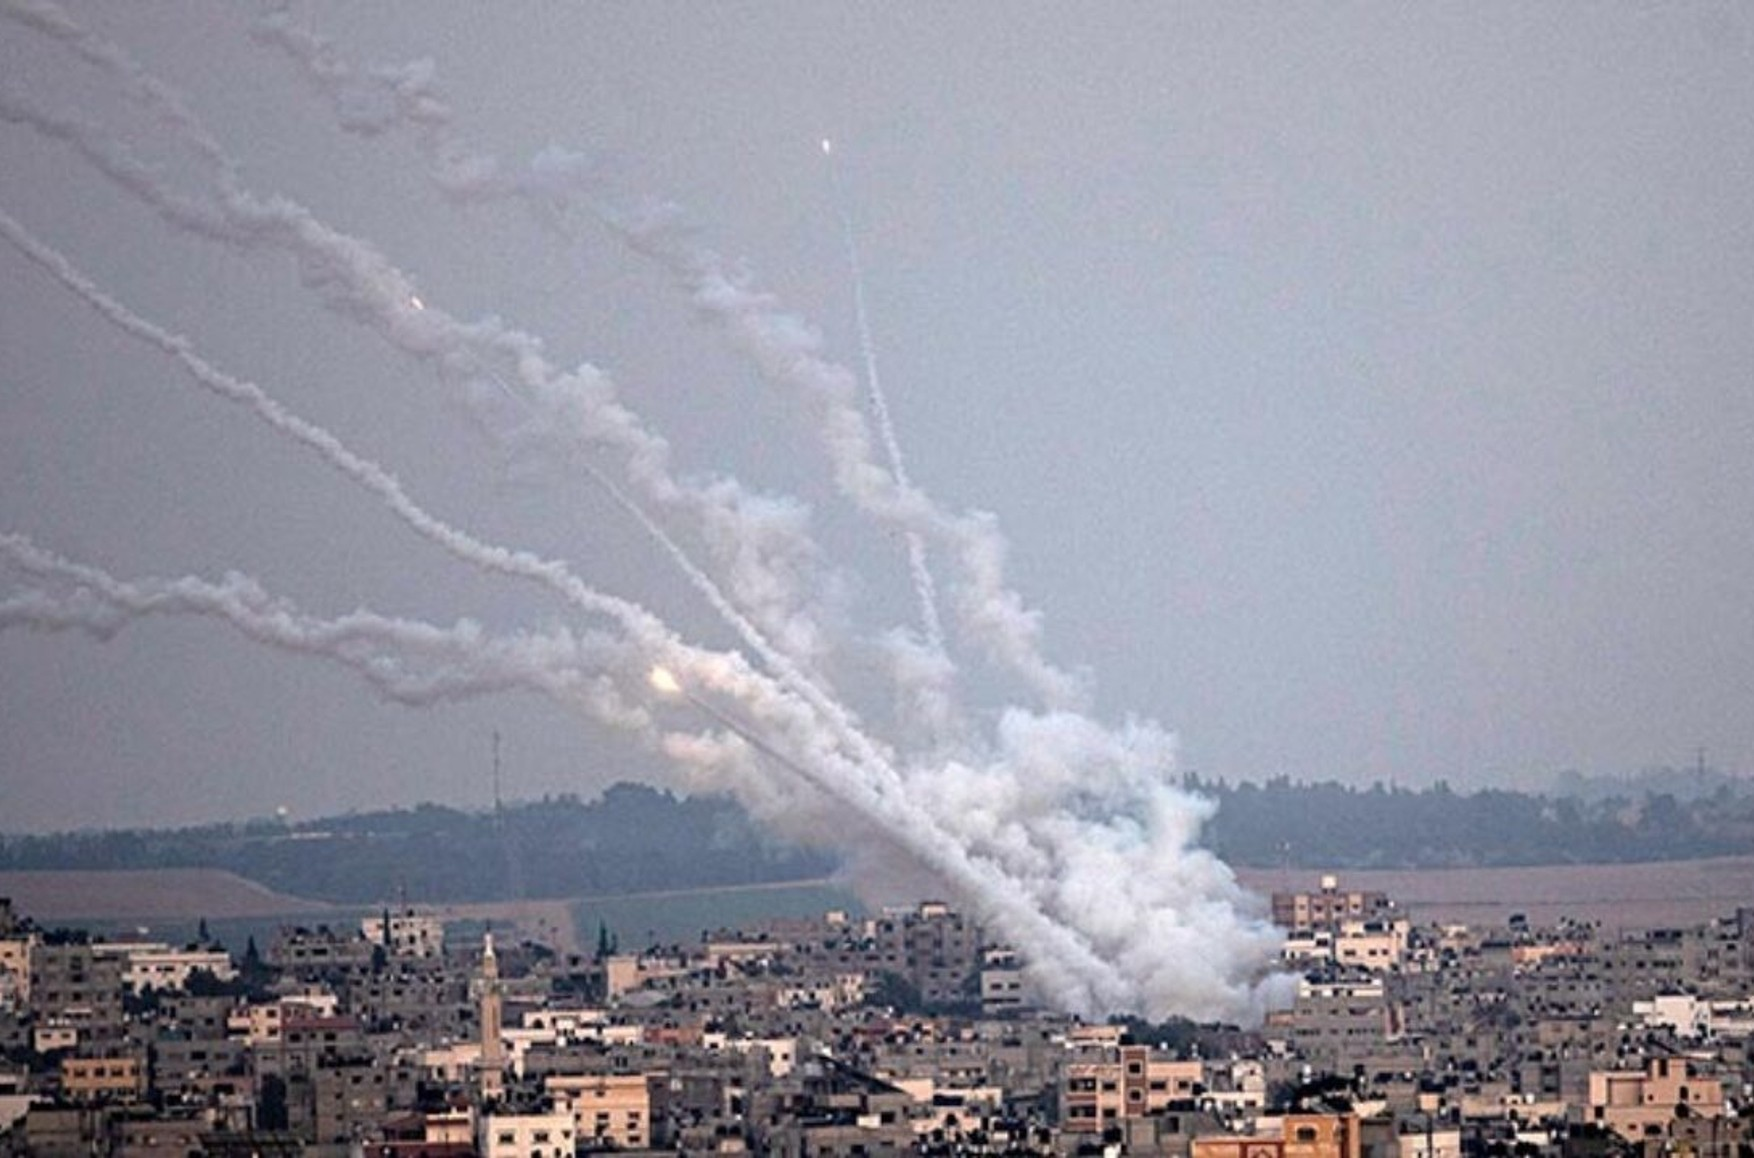 Hamas announced the launch of 50 rockets in the direction of the city of Ashdod